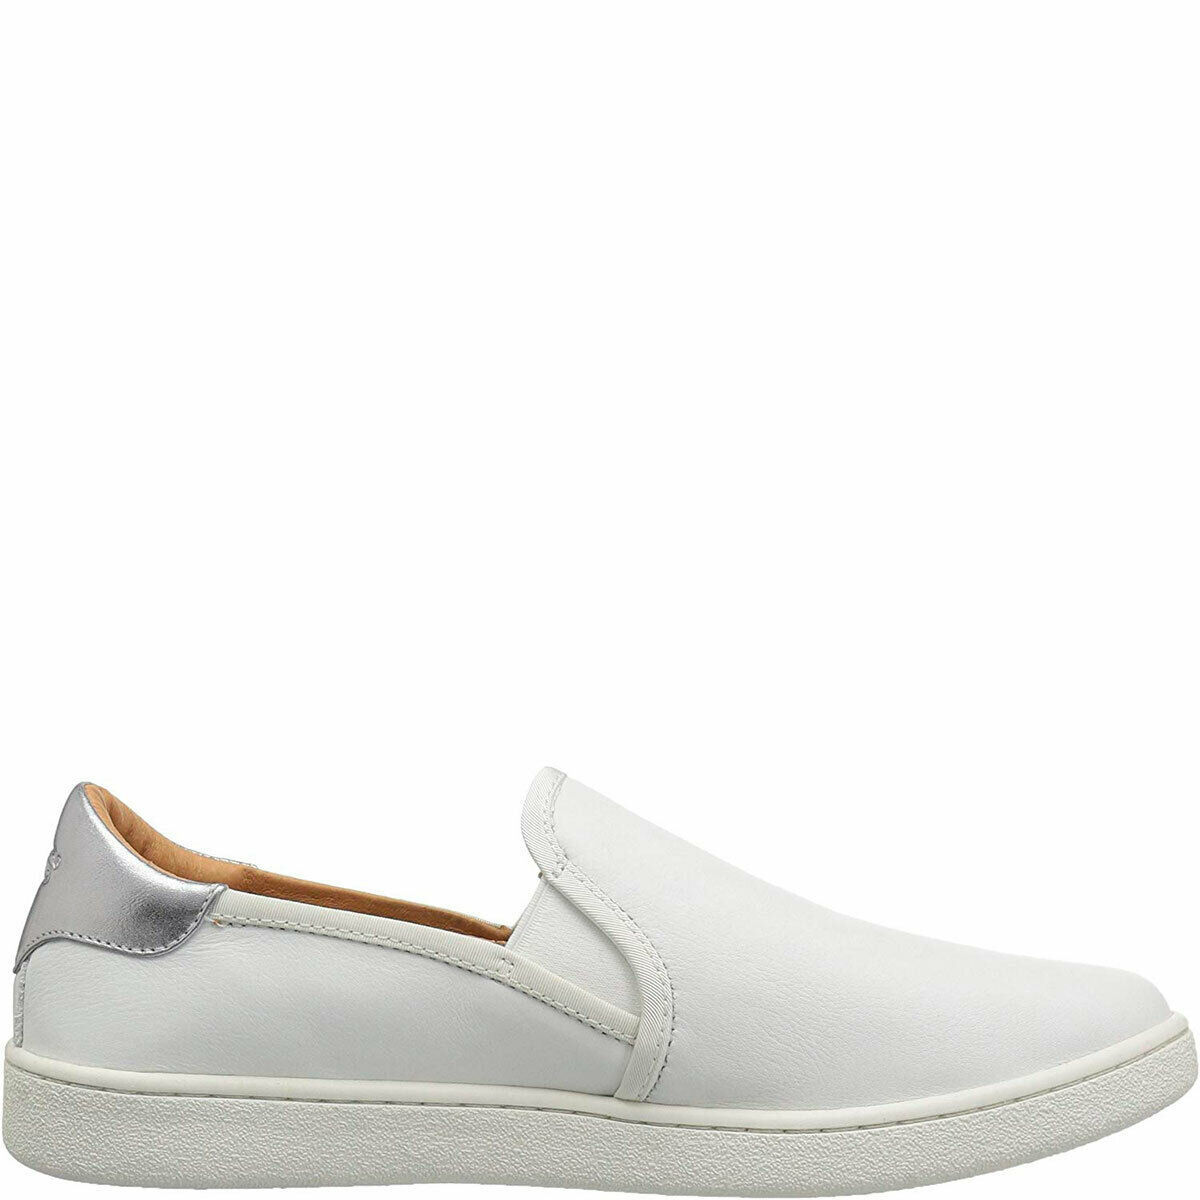 UGG Women's Cas Slip-on Fashion Sneakers White 5.5 M MSRP 100 New image 6